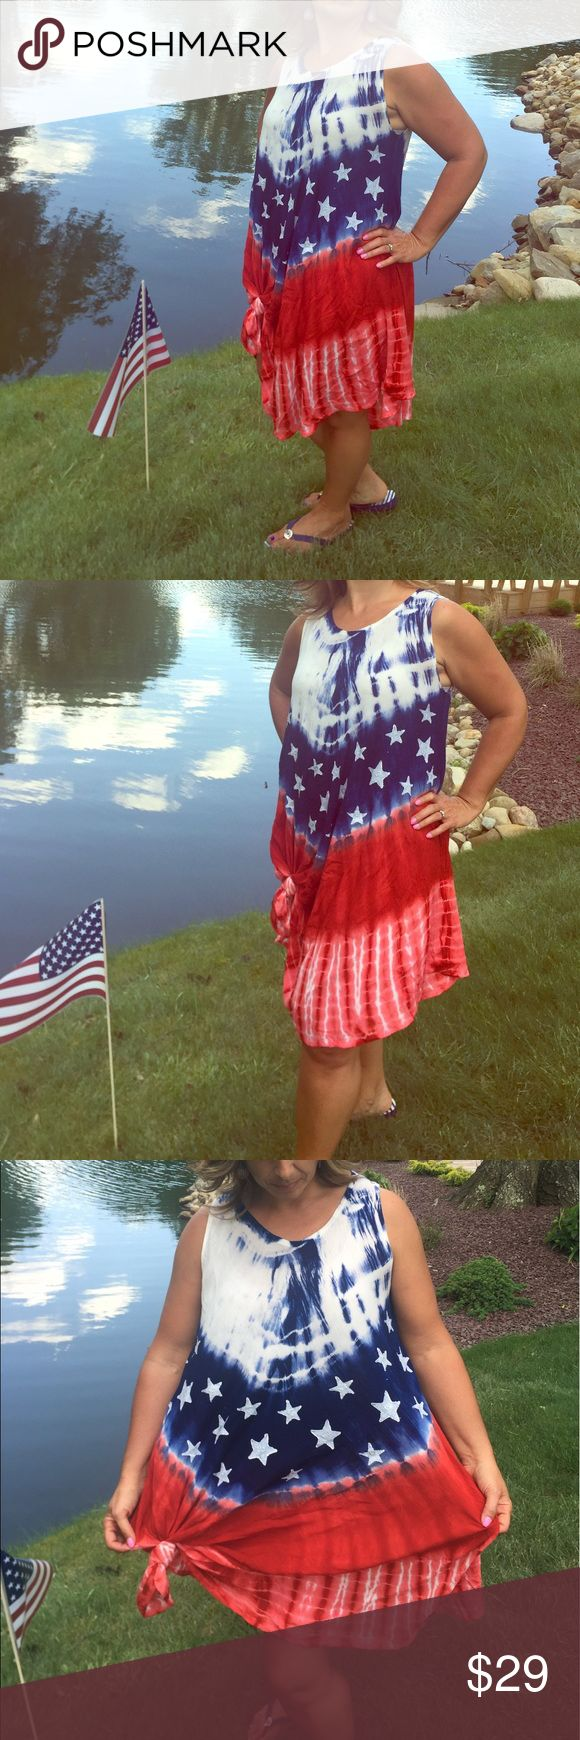 🇺🇸SHIPPING DISCOUNT TIL 10:50am EST 6/15/17 Worn once.  So adorable 🇺🇸 Super comfy! 🇺🇸 Easy breezy summer patriotic dress!🇺🇸 Dresses